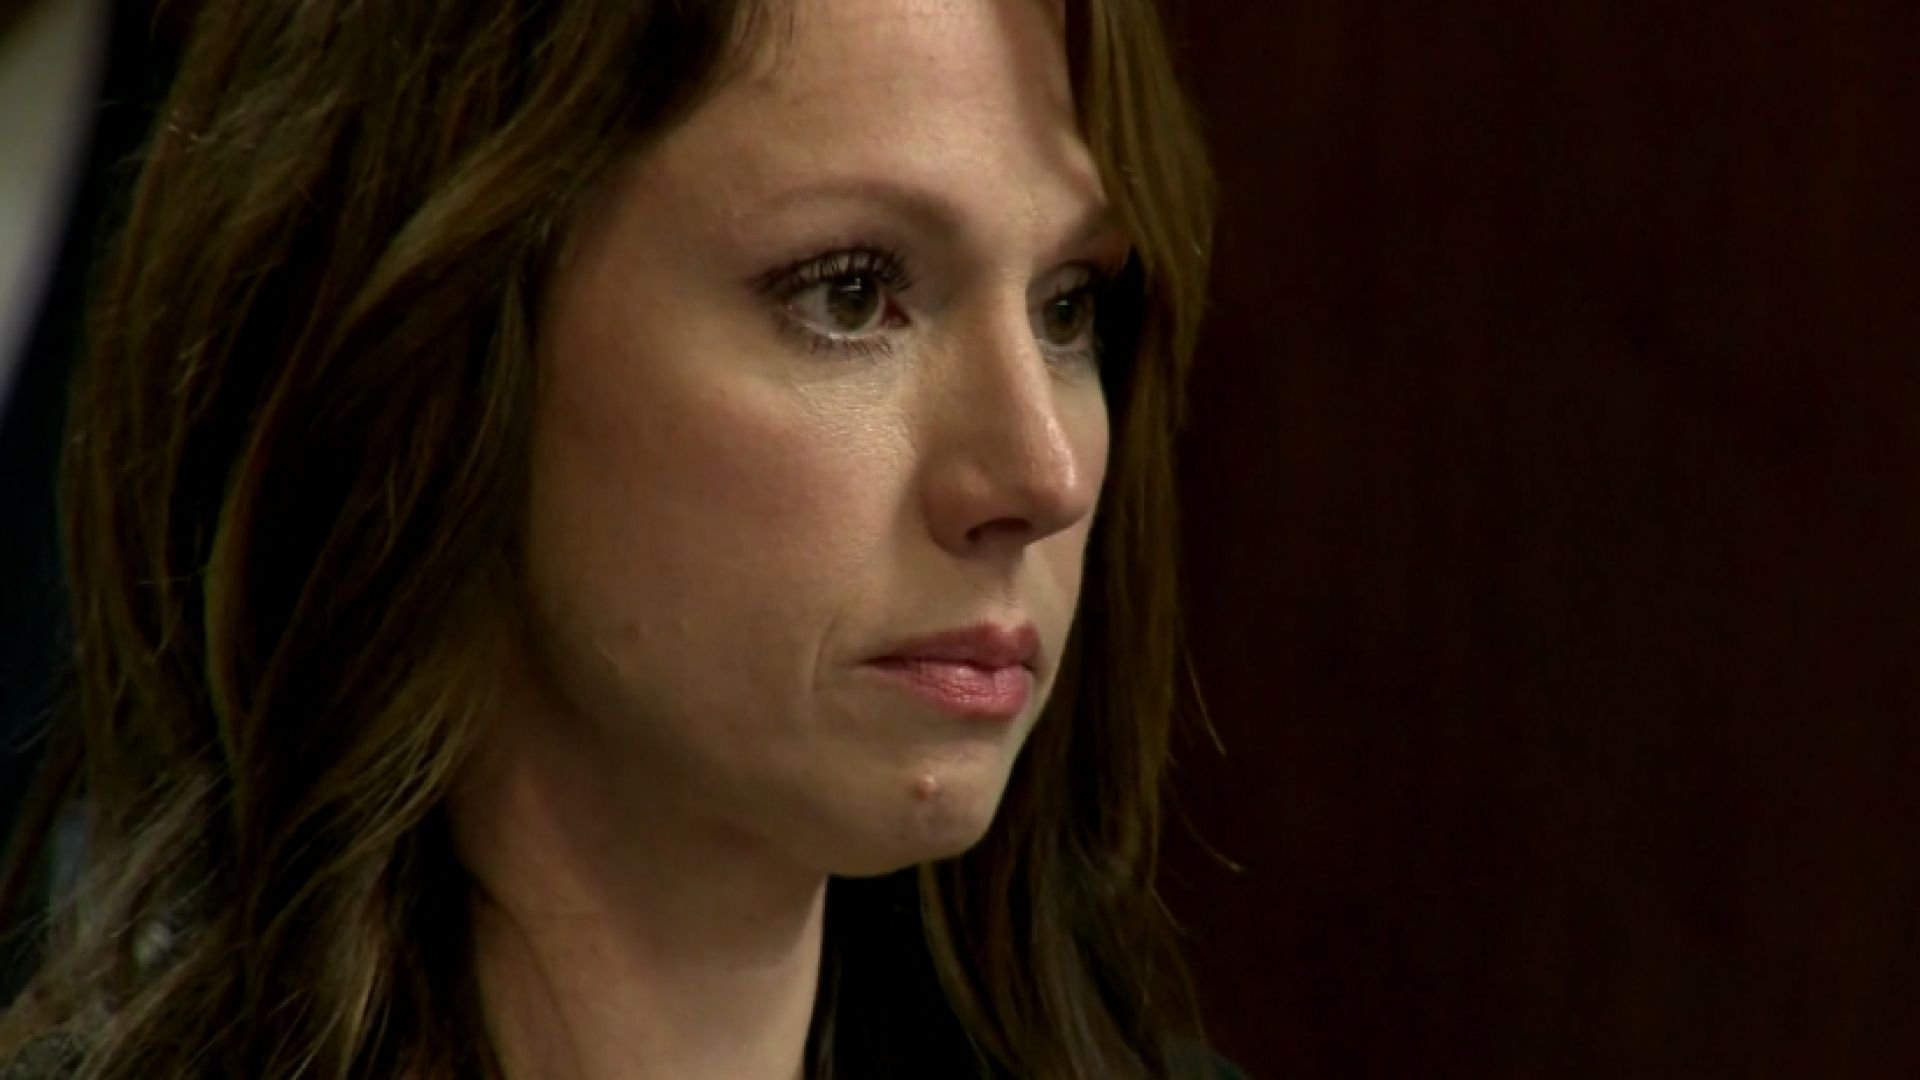 Area mom jailed for not vaccinating 9-year-old son